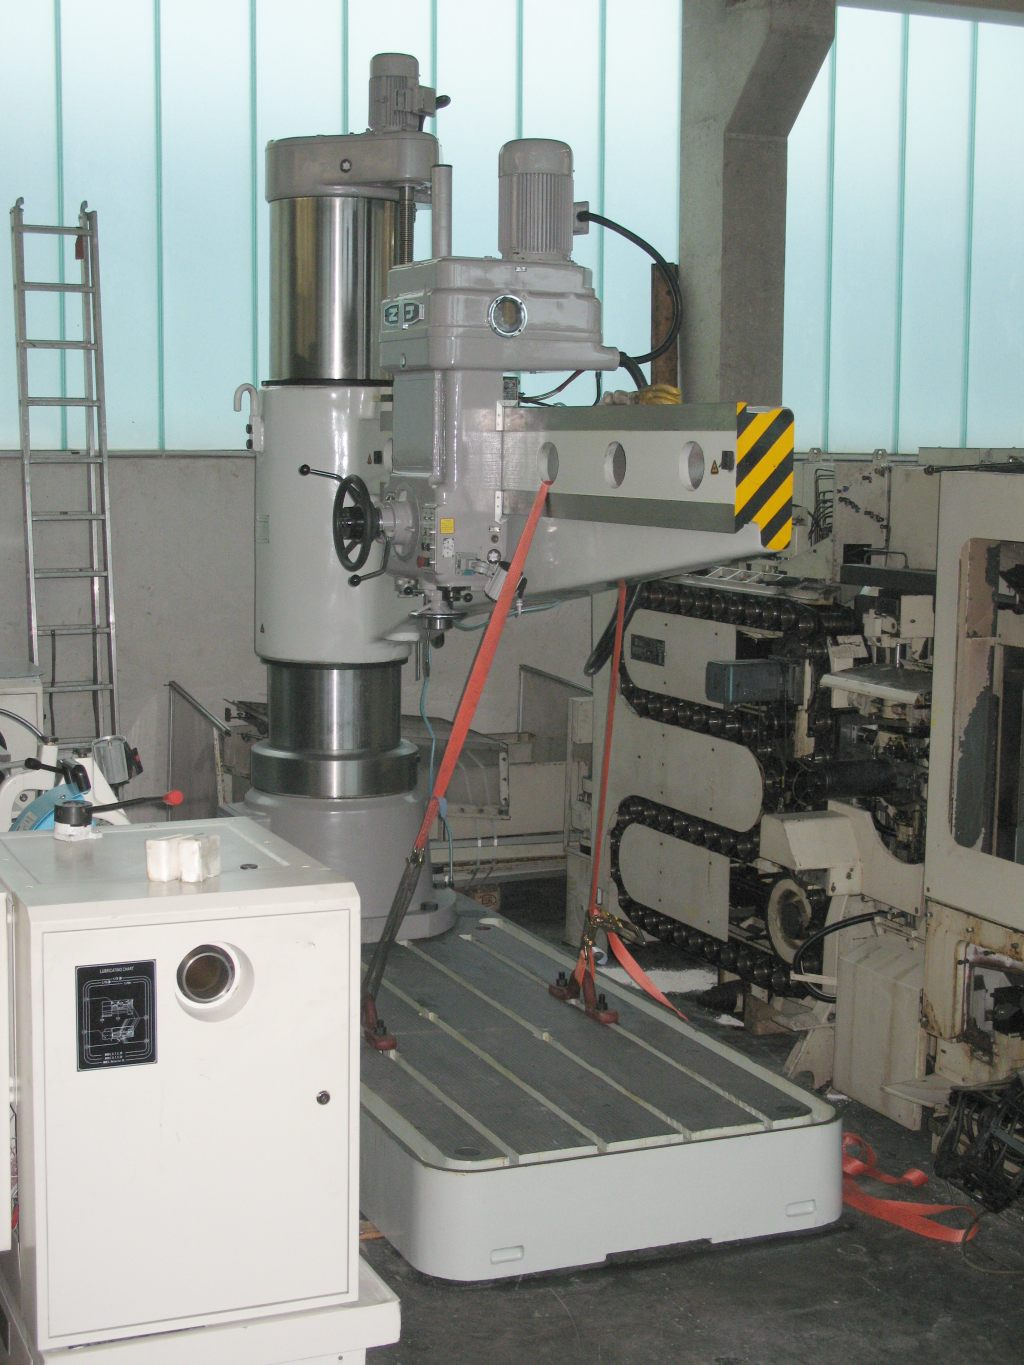 used Boring mills / Machining Centers / Drilling machines Radial Drilling Machine SMTCL Z 3080 x 25